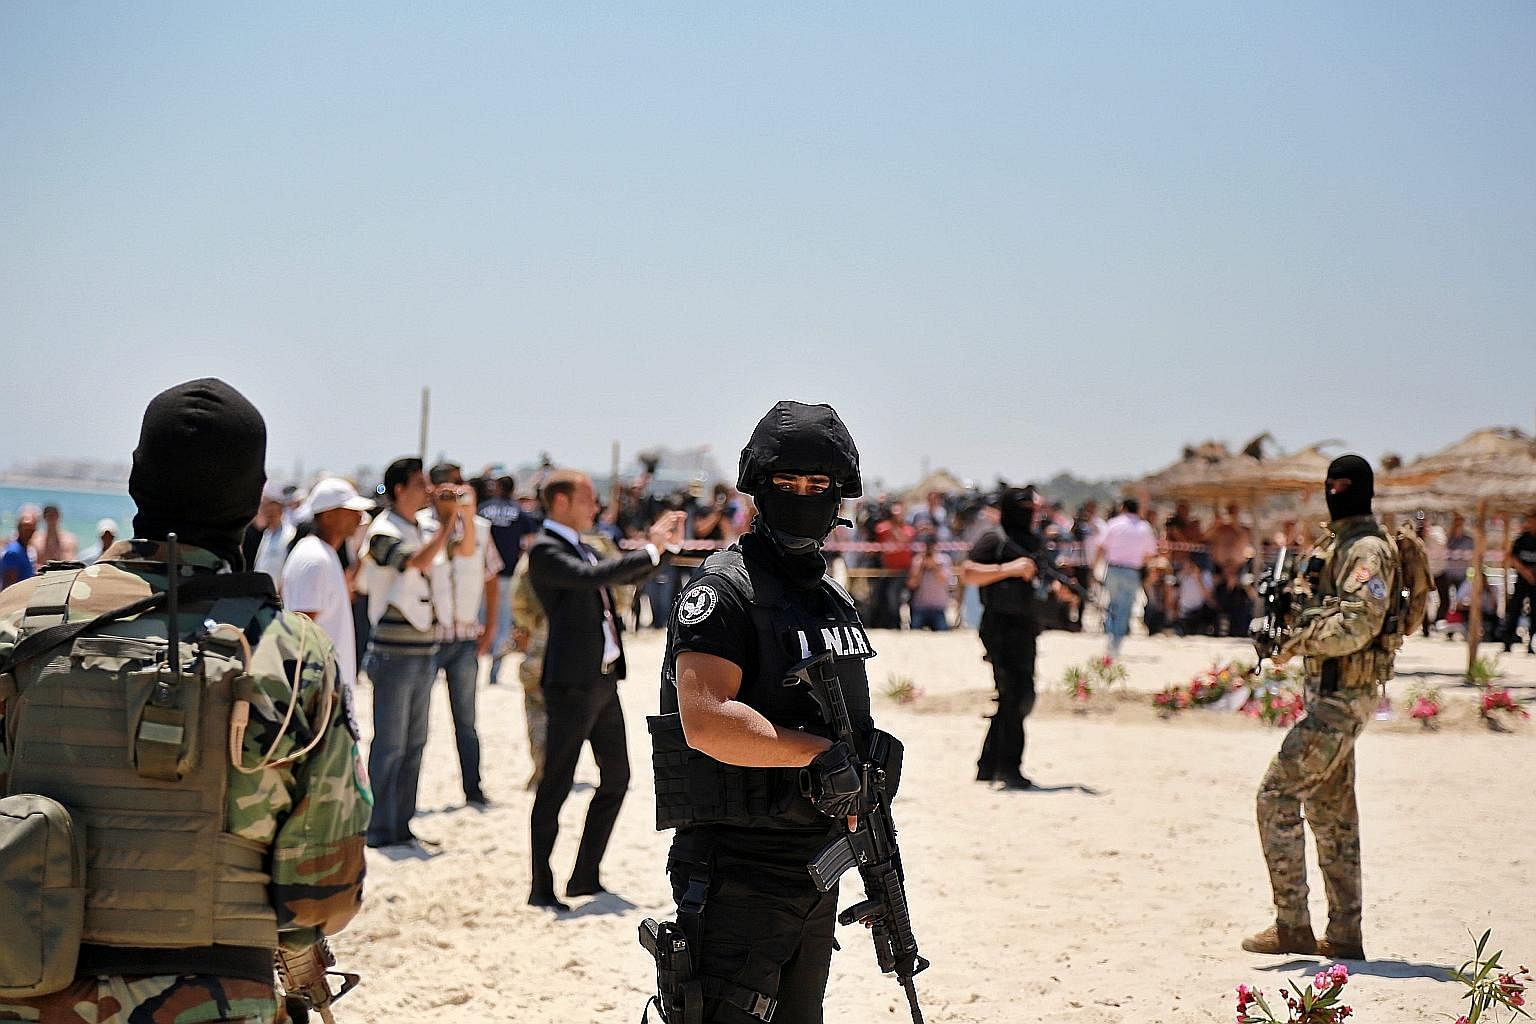 Tunisian security forces at a wreath-laying ceremony on Monday for victims of the shooting at a beach resort in Sousse, near Tunis. Addressing the root causes of extremism might help persuade those susceptible to radicalisation that they have a stake